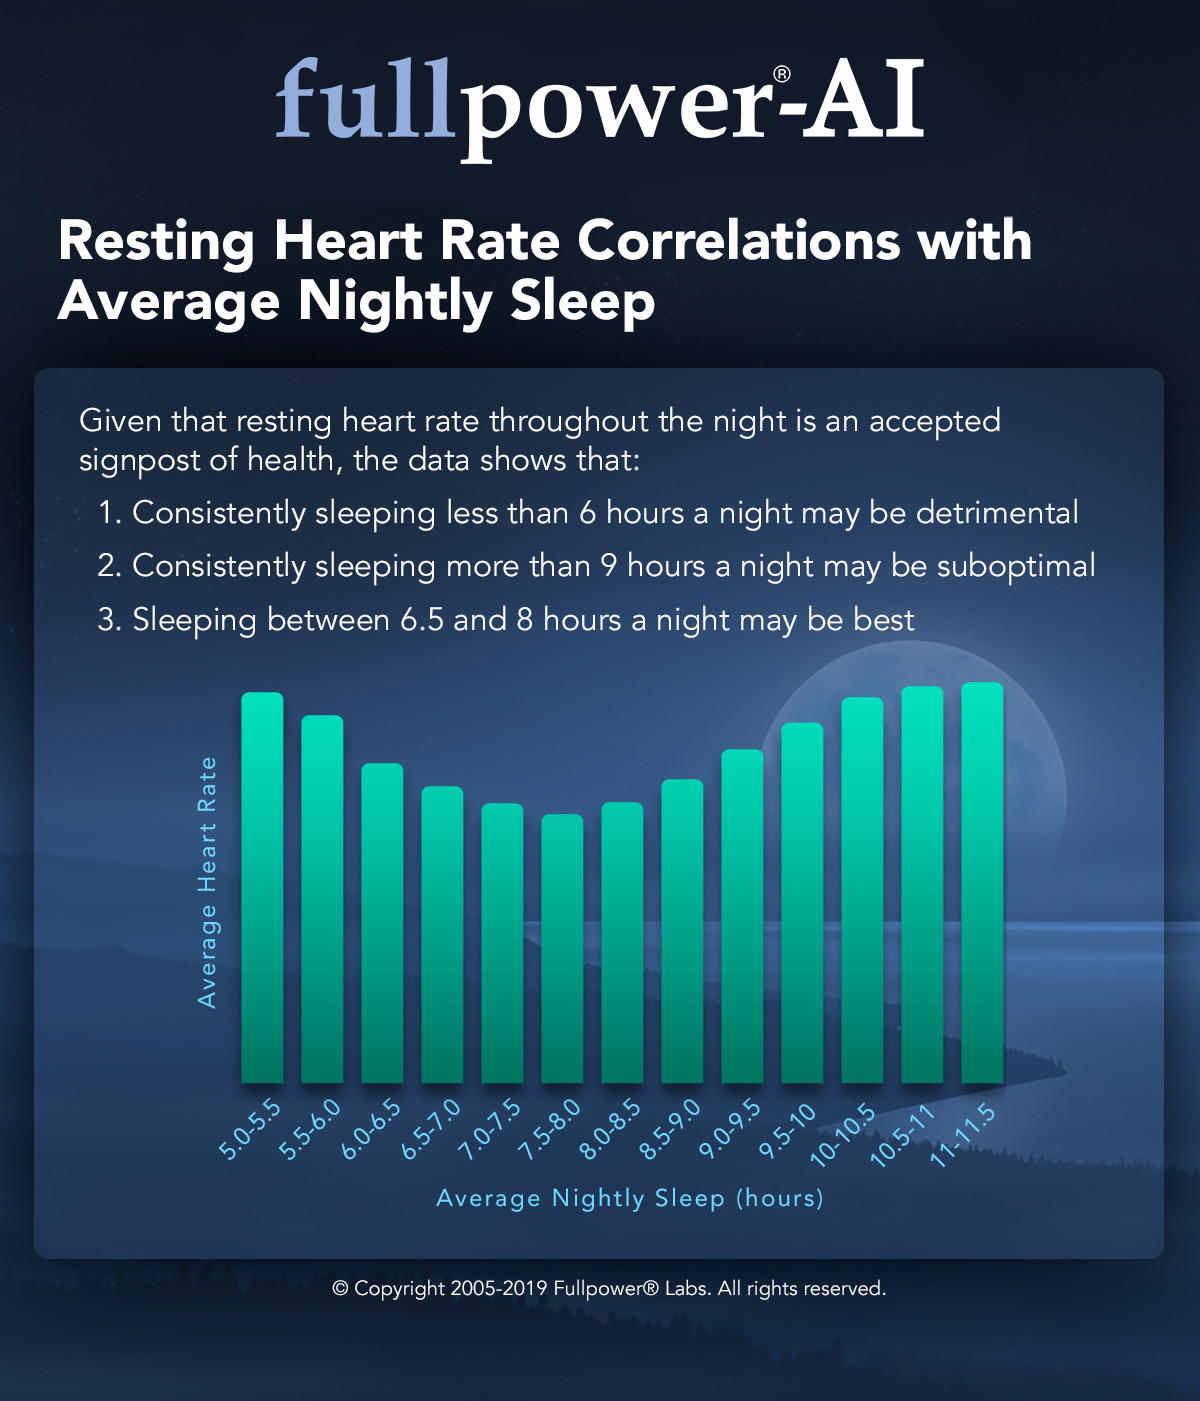 Resting Heart Rate Correlations with Average Nightly Sleep